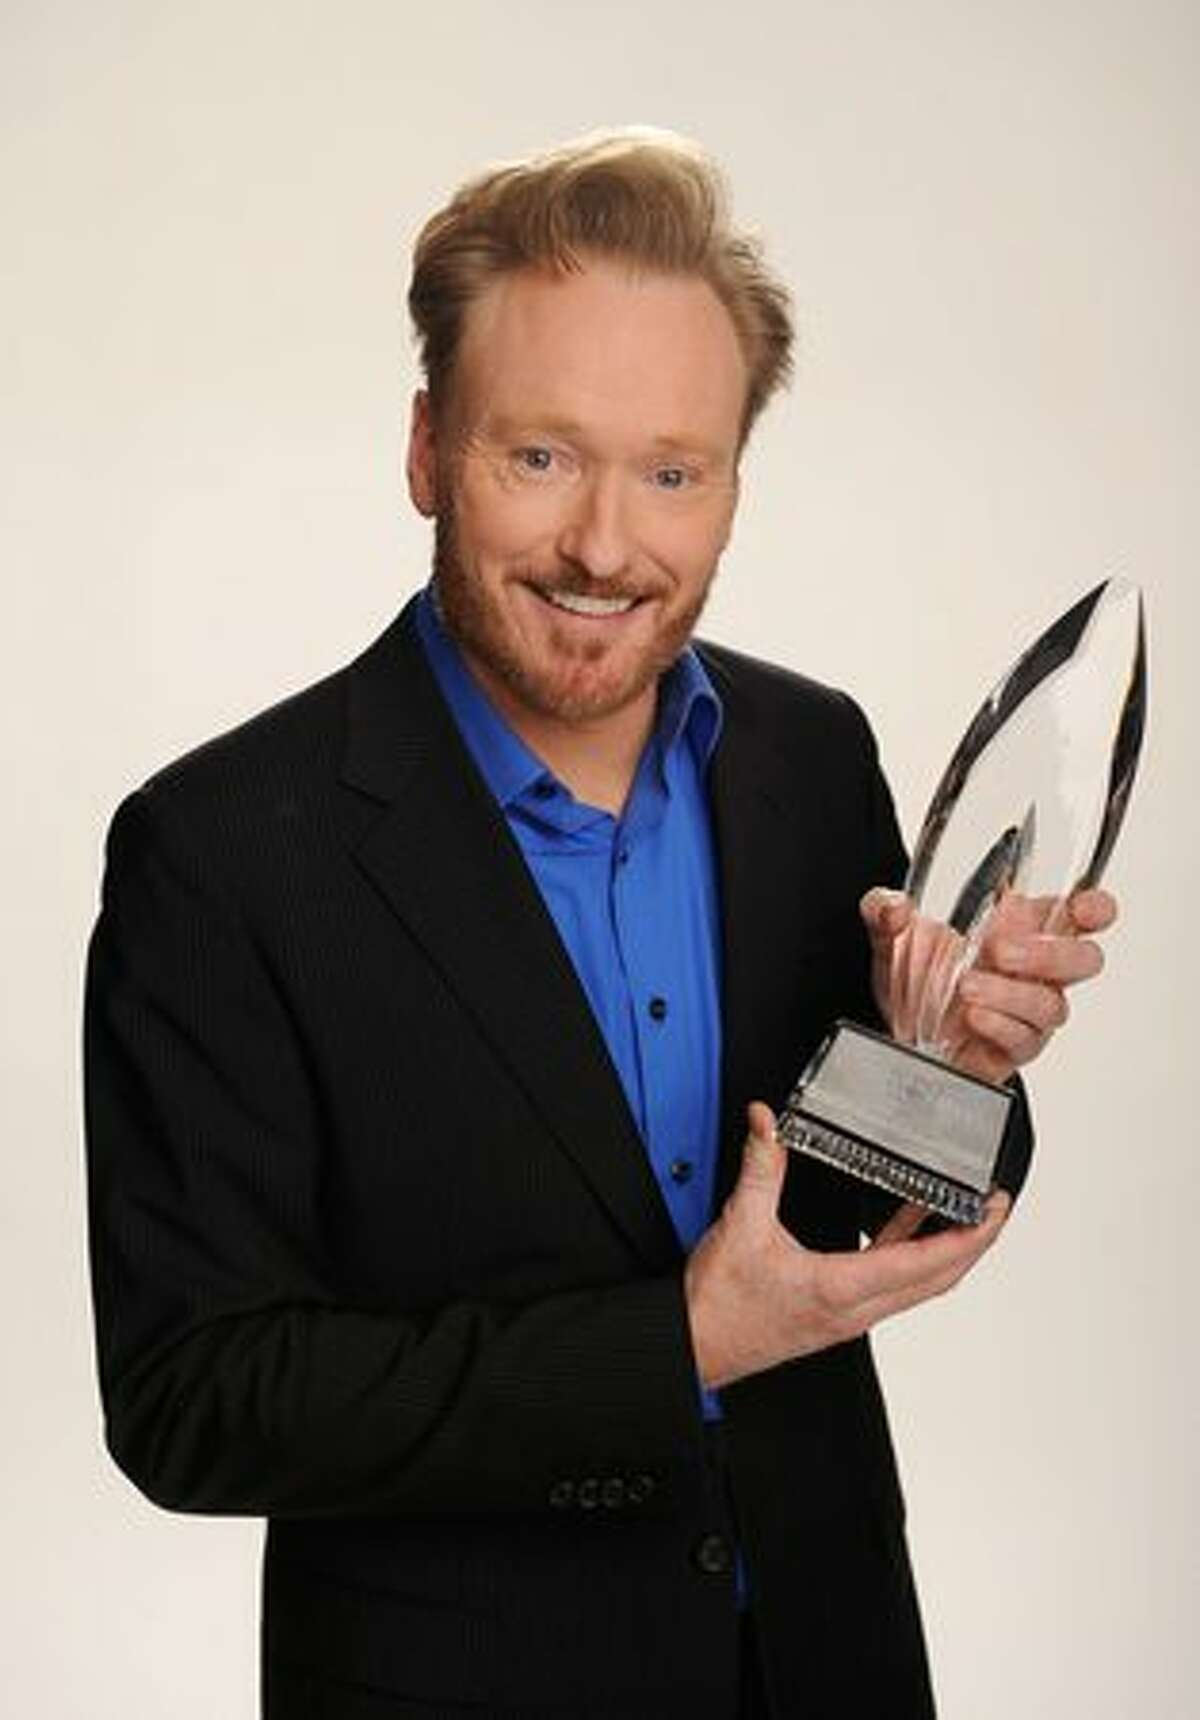 TV host Conan O'Brien, winner of the Favorite Talk Show Host award, poses for a portrait during the 2011 People's Choice Awards at Nokia Theatre L.A. Live in Los Angeles on Wednesday, Jan. 5, 2011.